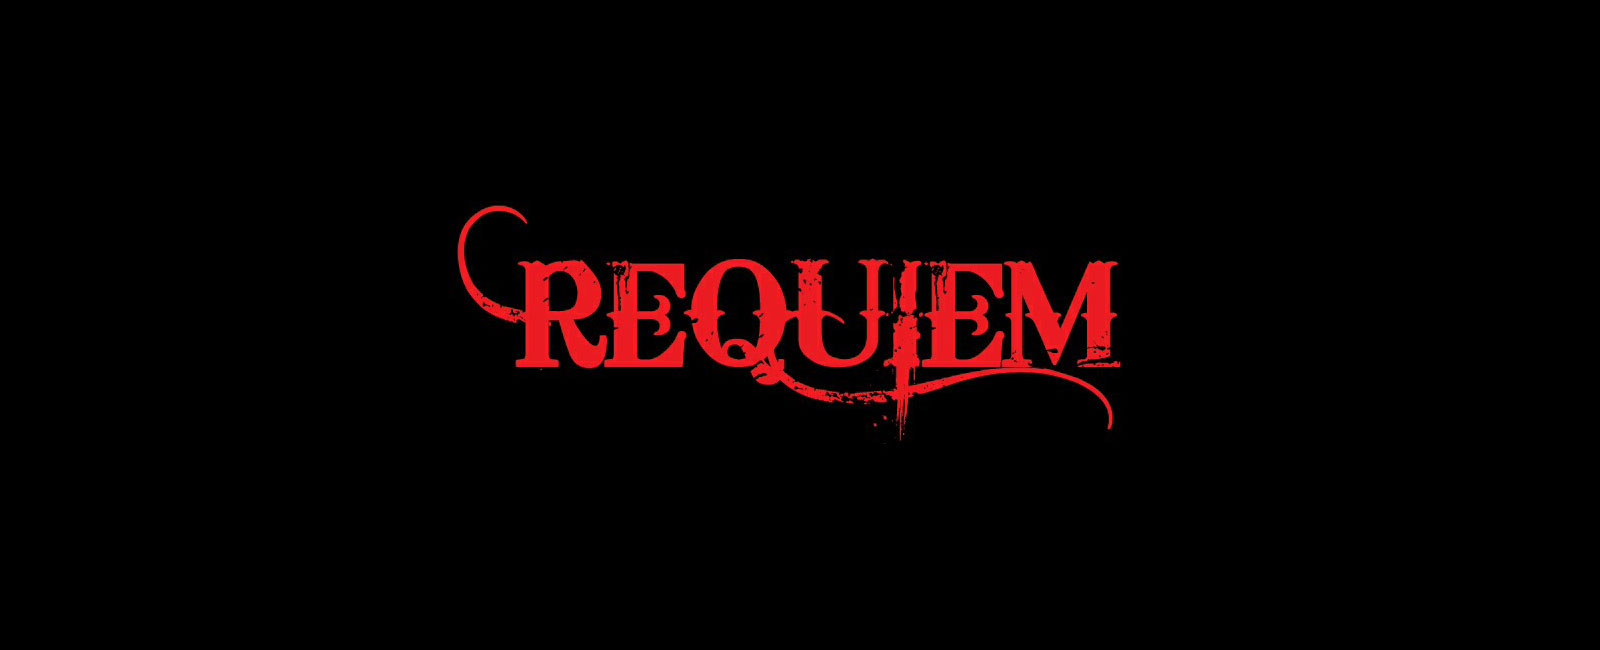 room_requiem_bg